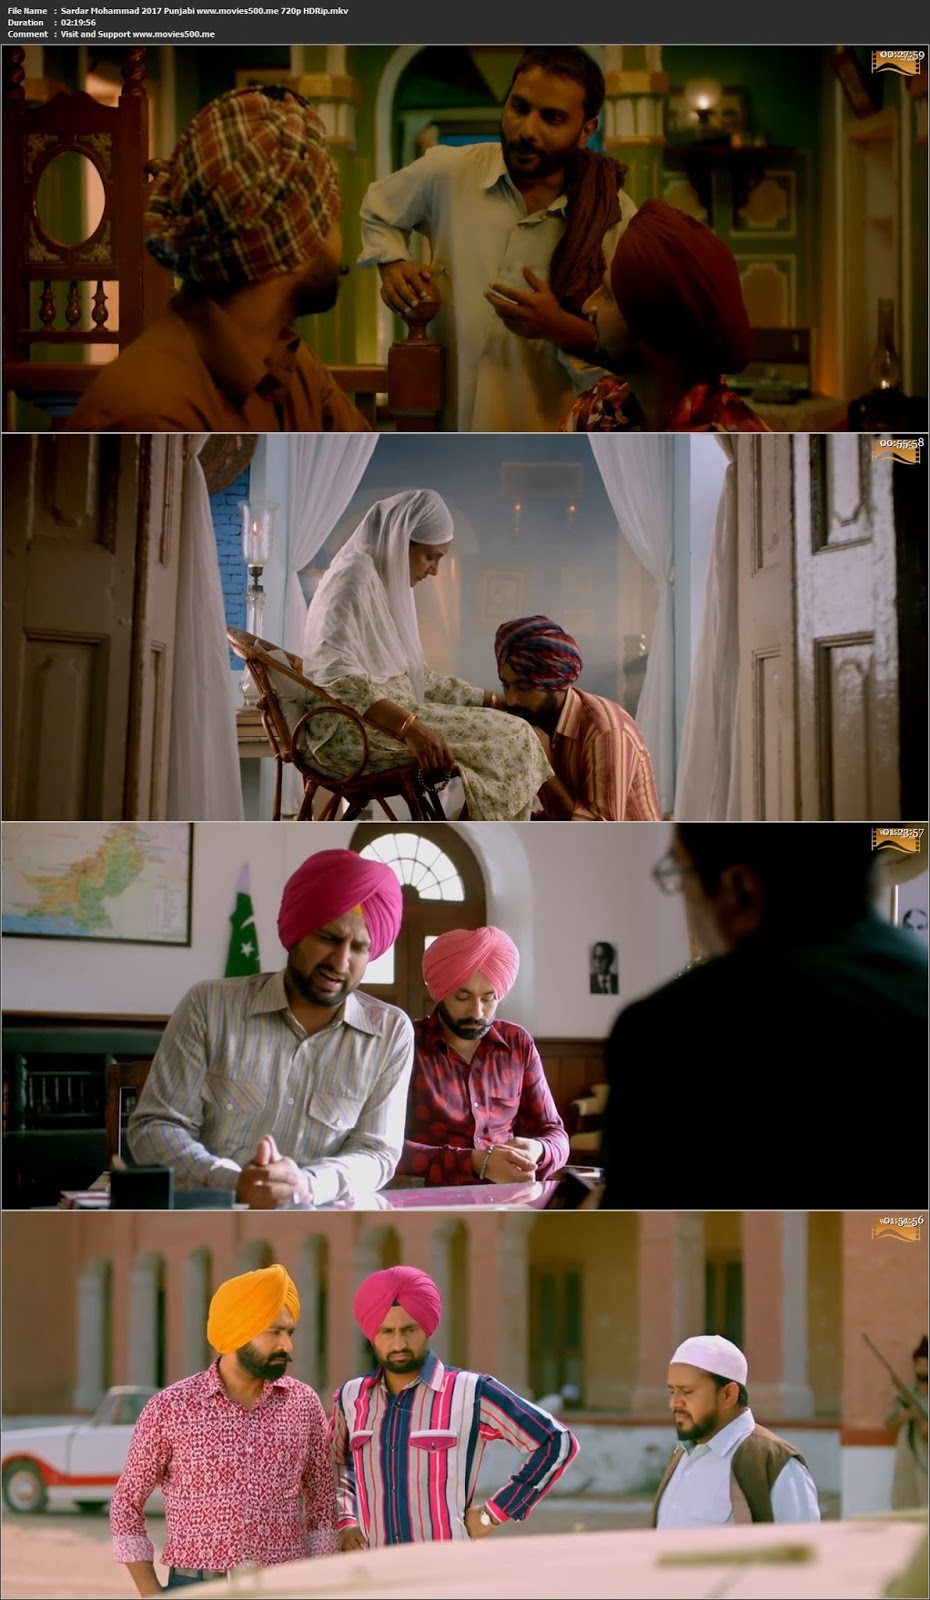 Sardar Mohammad 2017 Punjabi Full Movie HDRip 720p at gileadhomecare.com